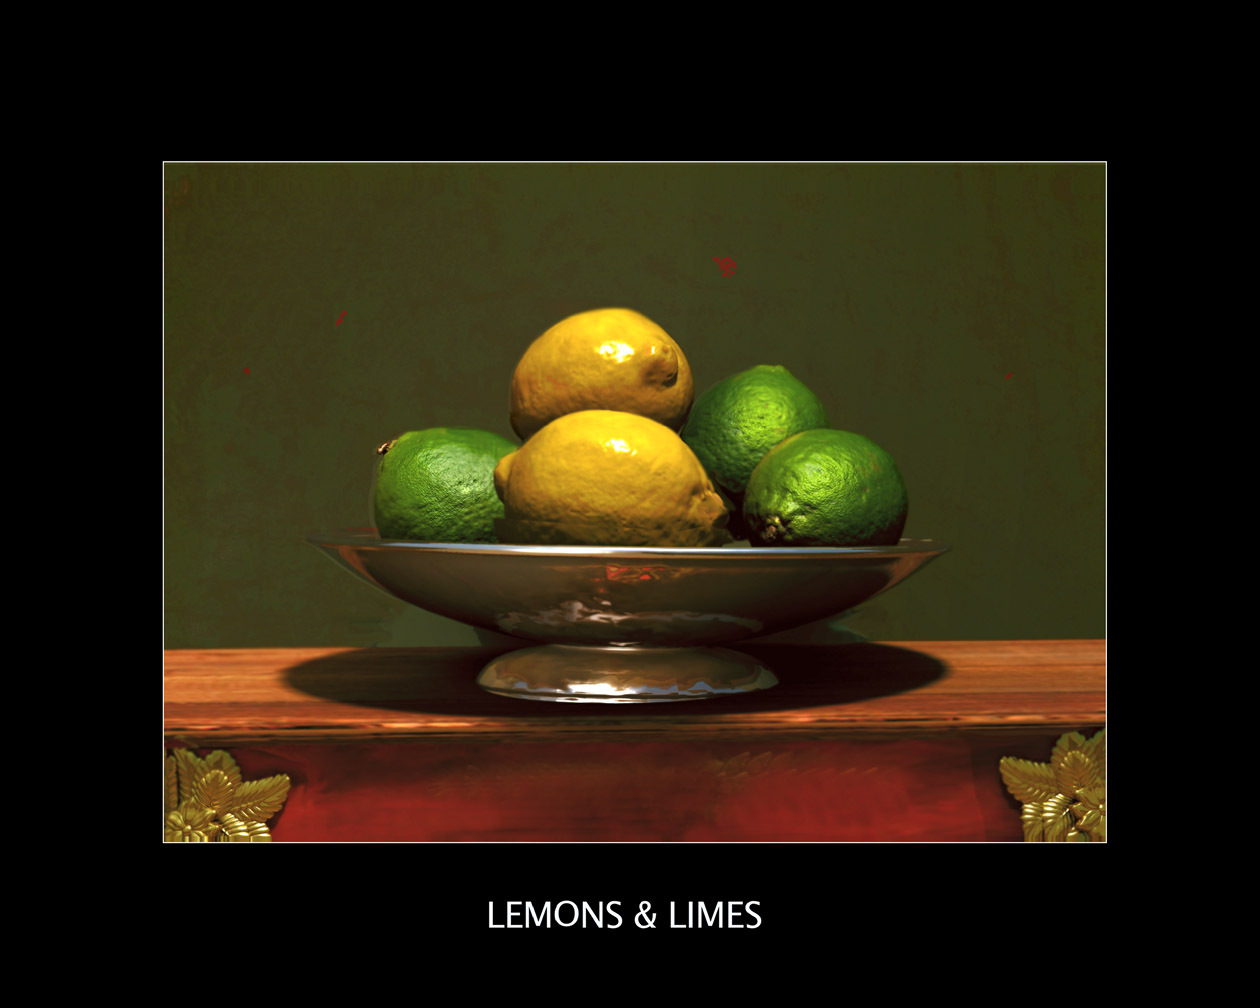 Lemons and Limes by Artformz2